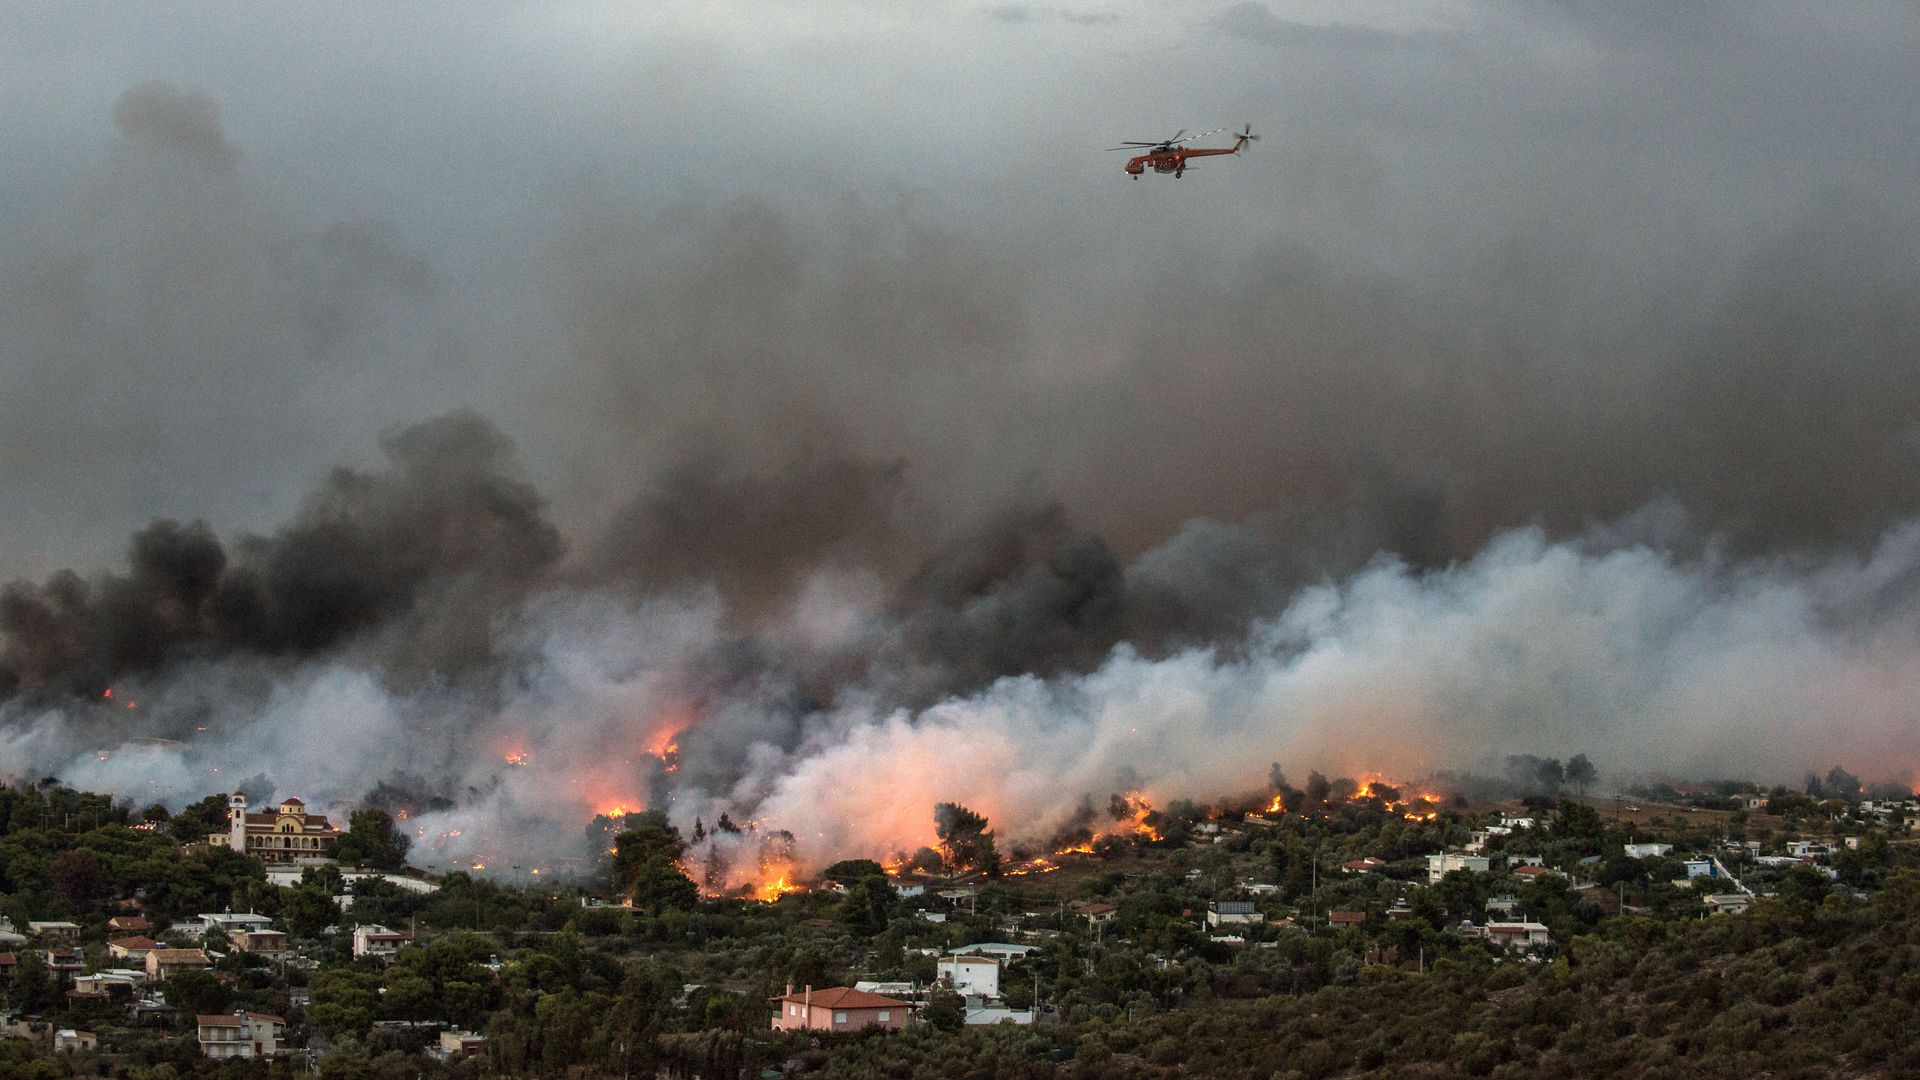 Helicopter flying over wildfires in Greece